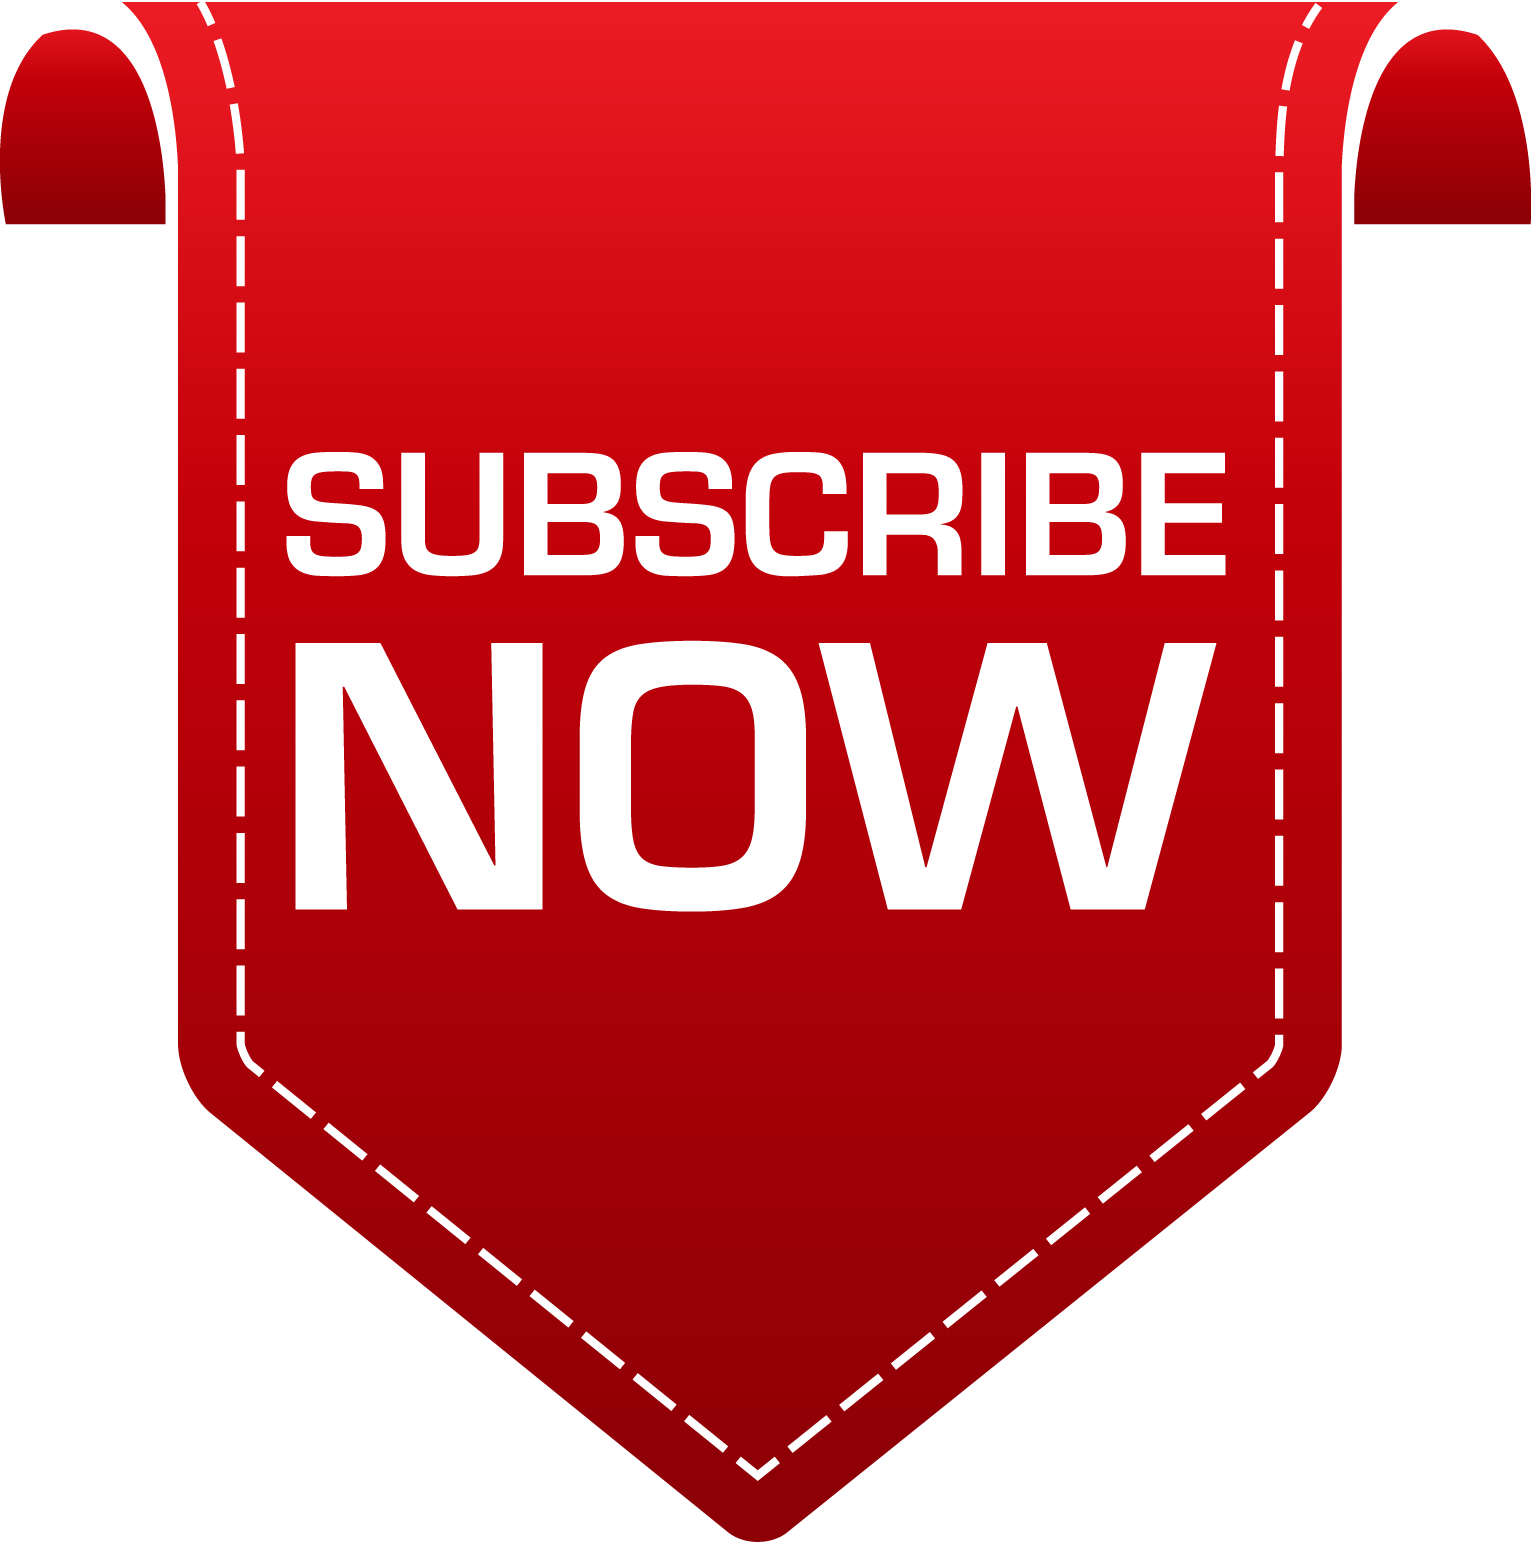 Subscribe png. Transparent images all